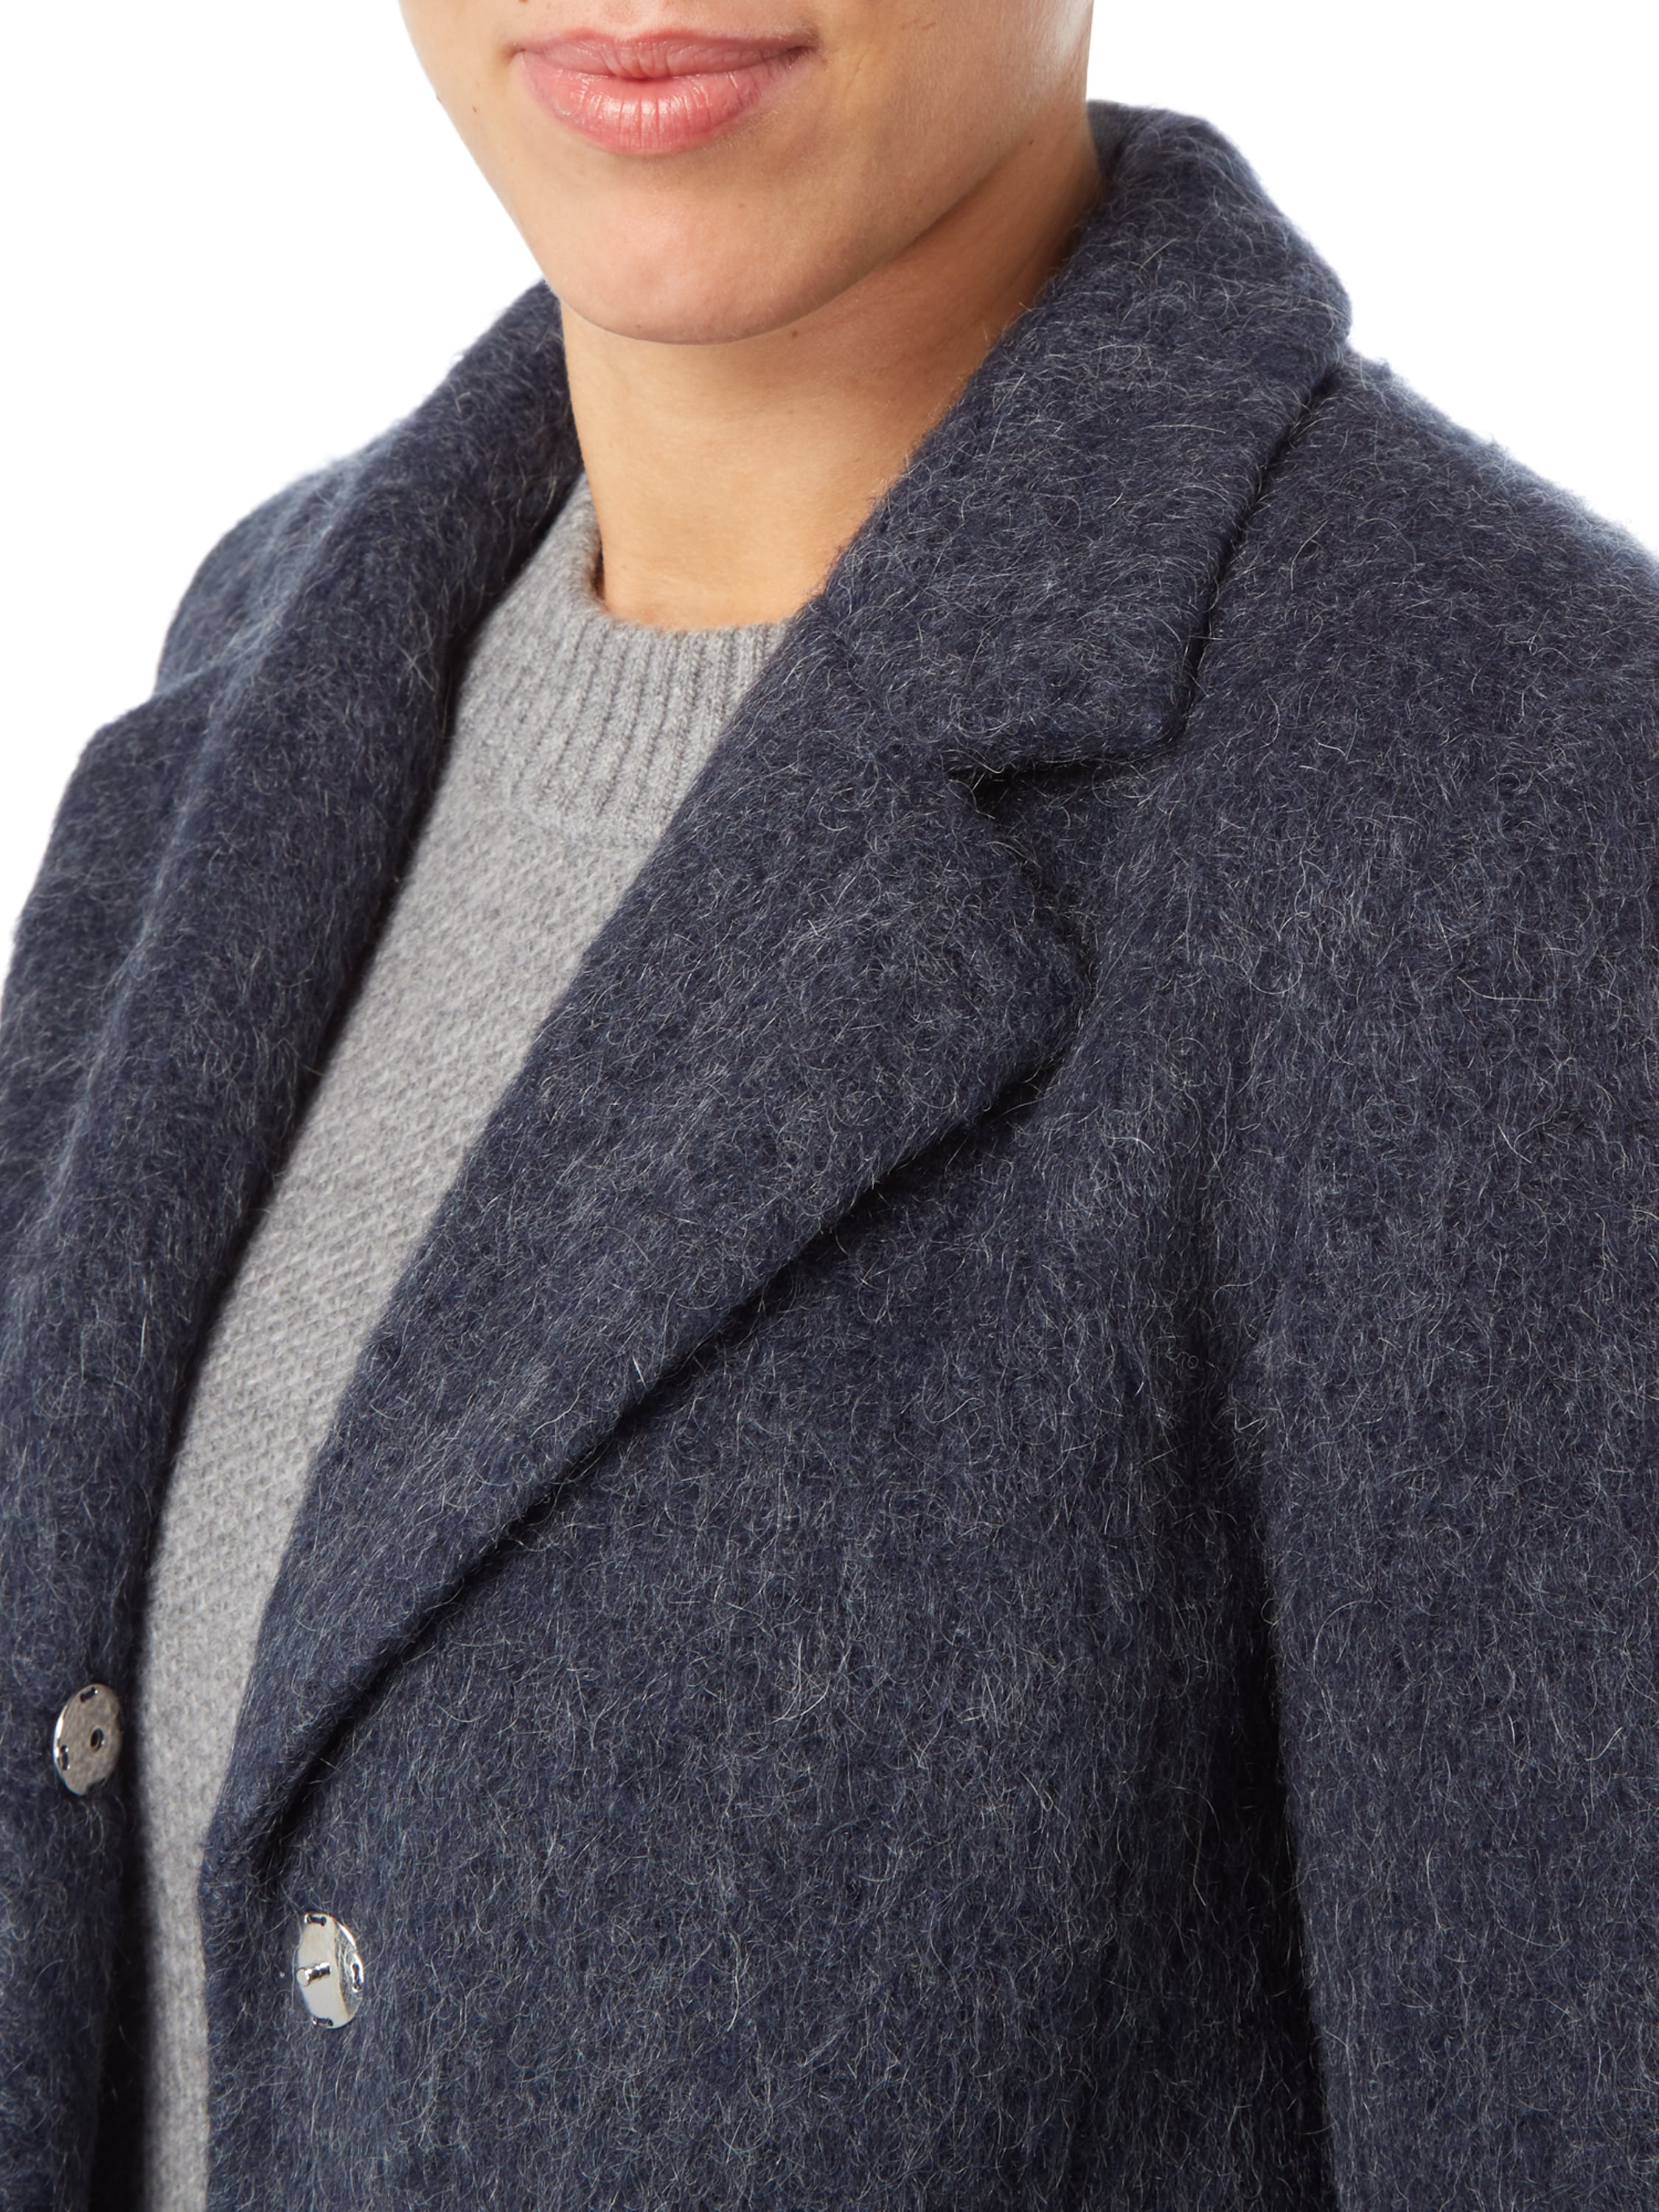 angora single christian girls Jcrew is style over fashion and offers timeless outfits for women, men, and children it's sneakers with suits, color blocks & pattern-mixing, denim jeans with chambray.